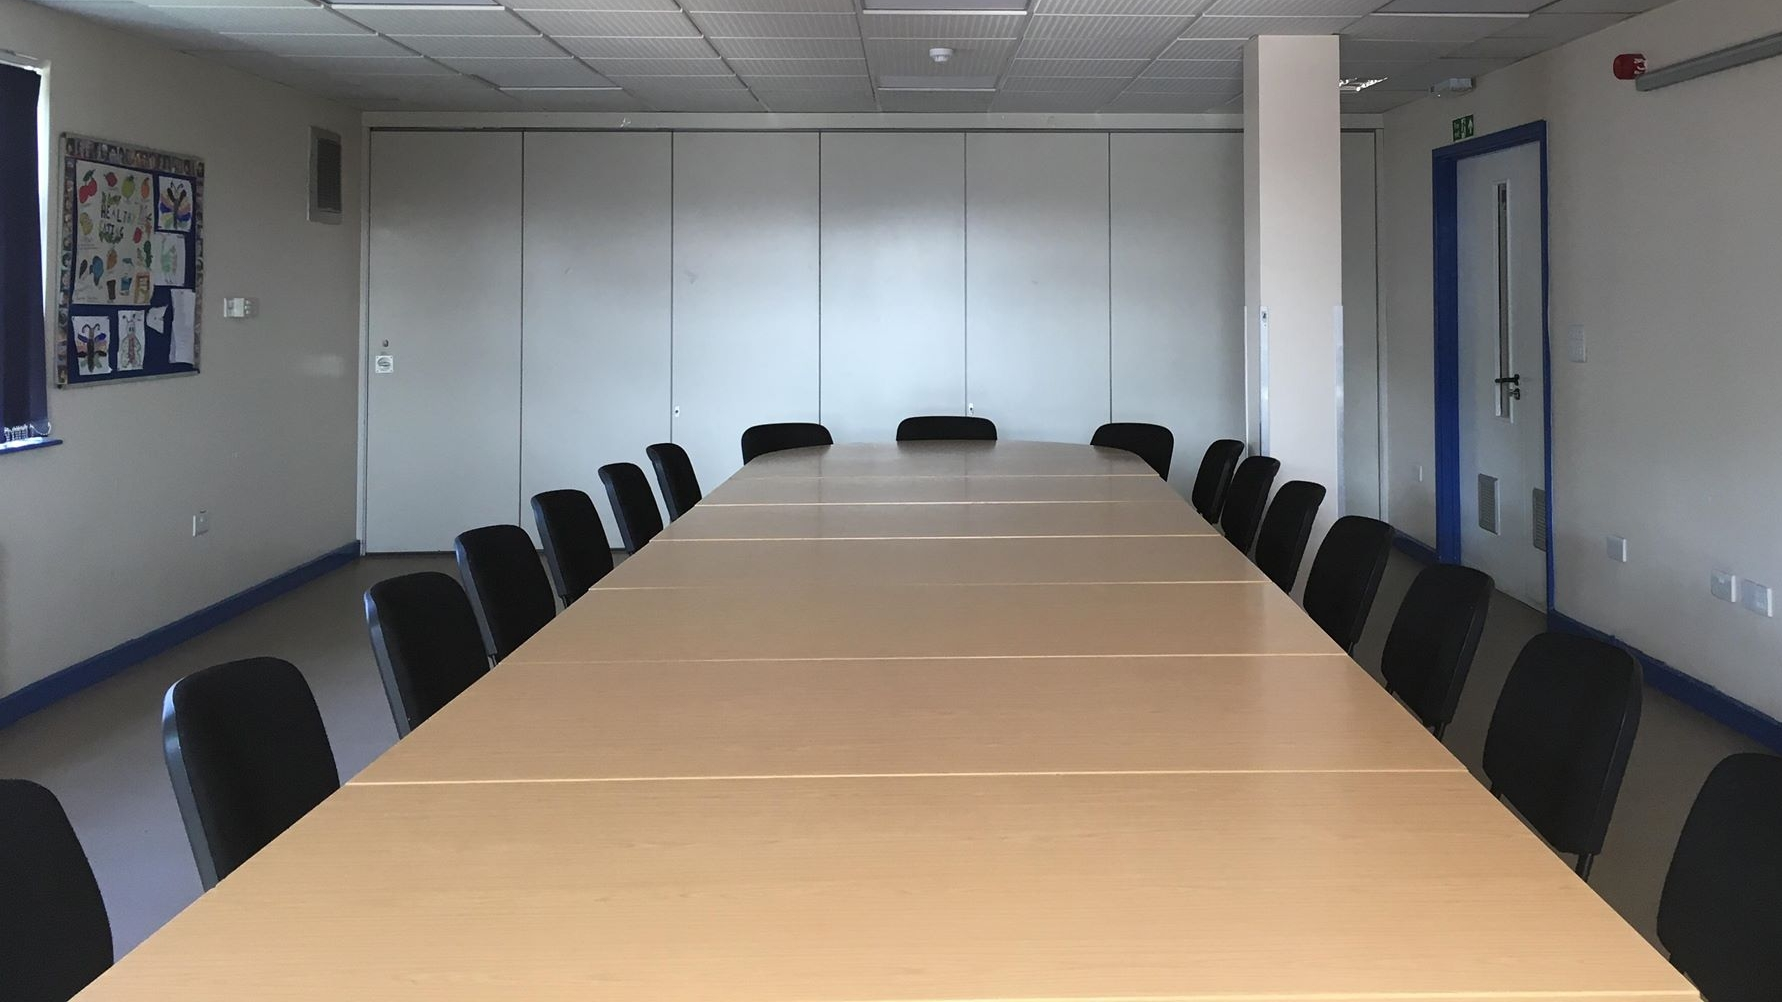 Meeting Room Hire - From only £15 Per hour